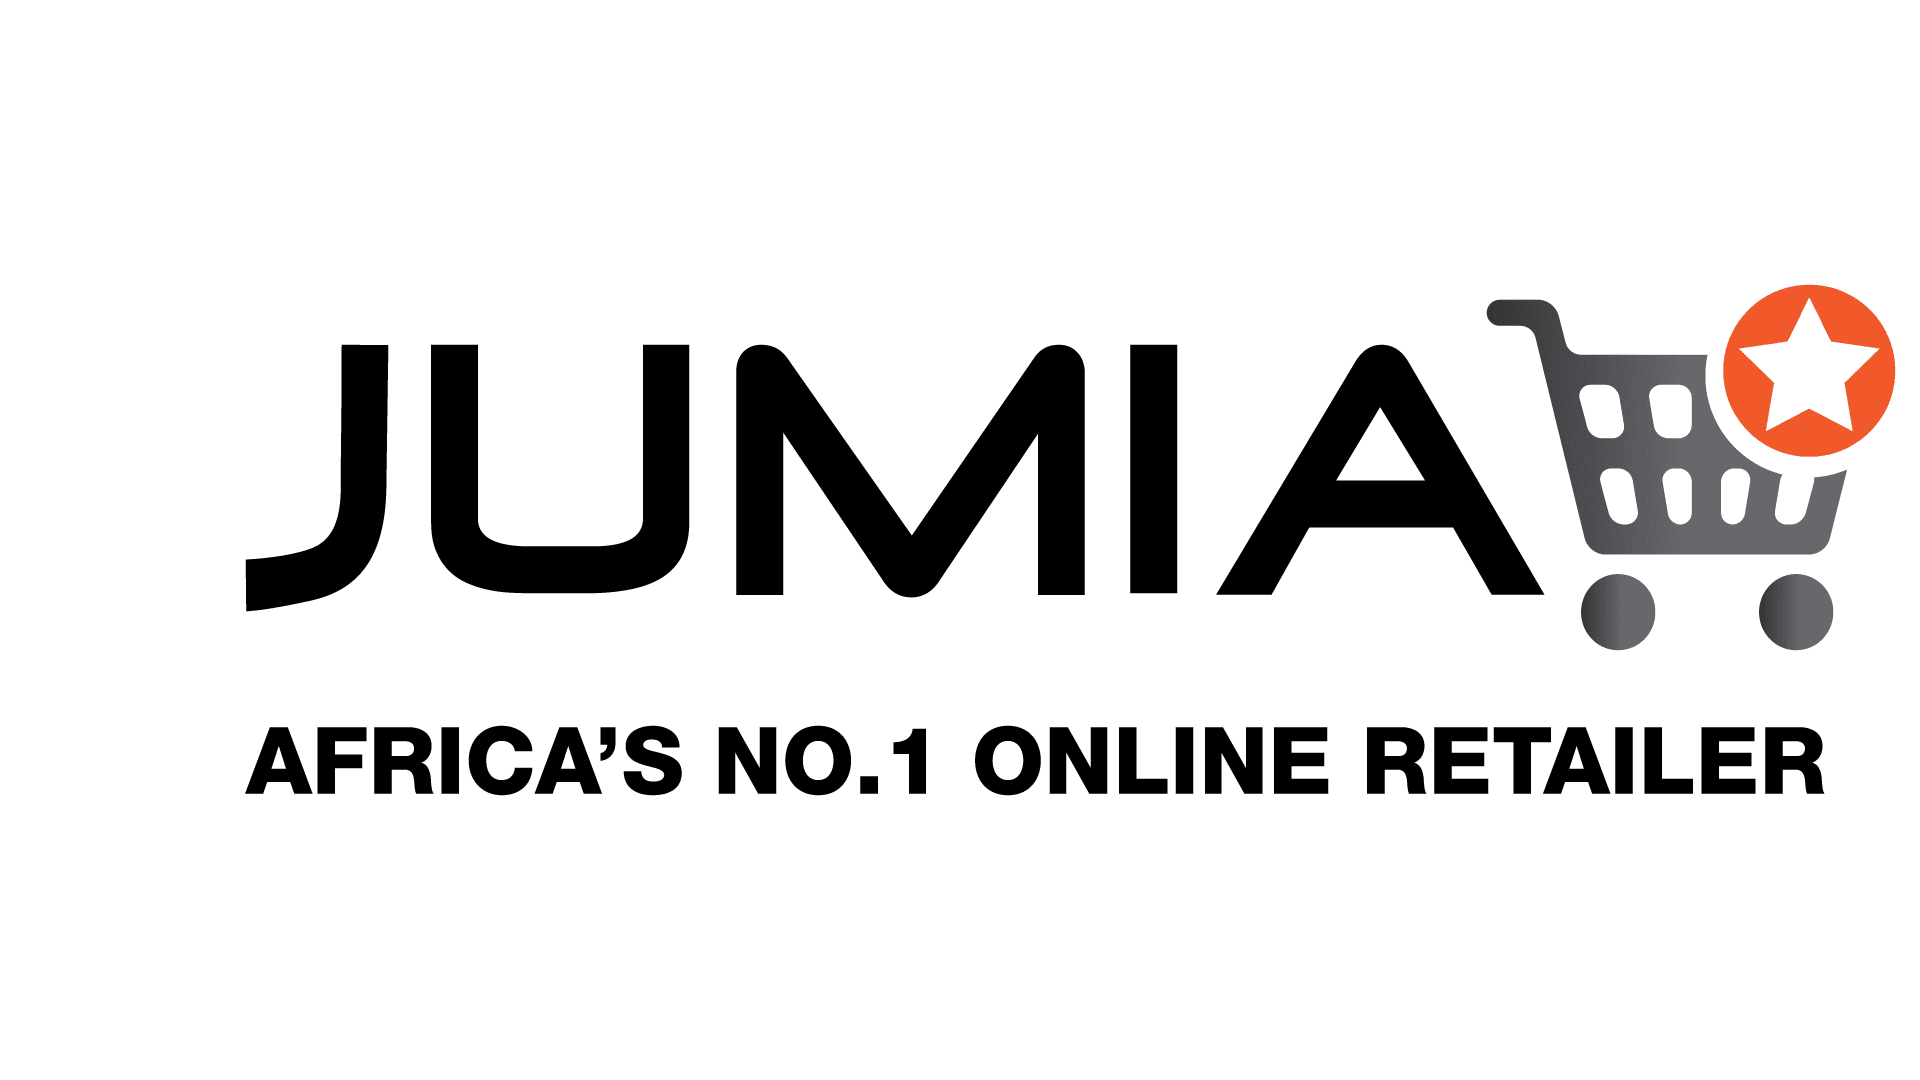 Operations Excellence Associate at Jumia Nigeria